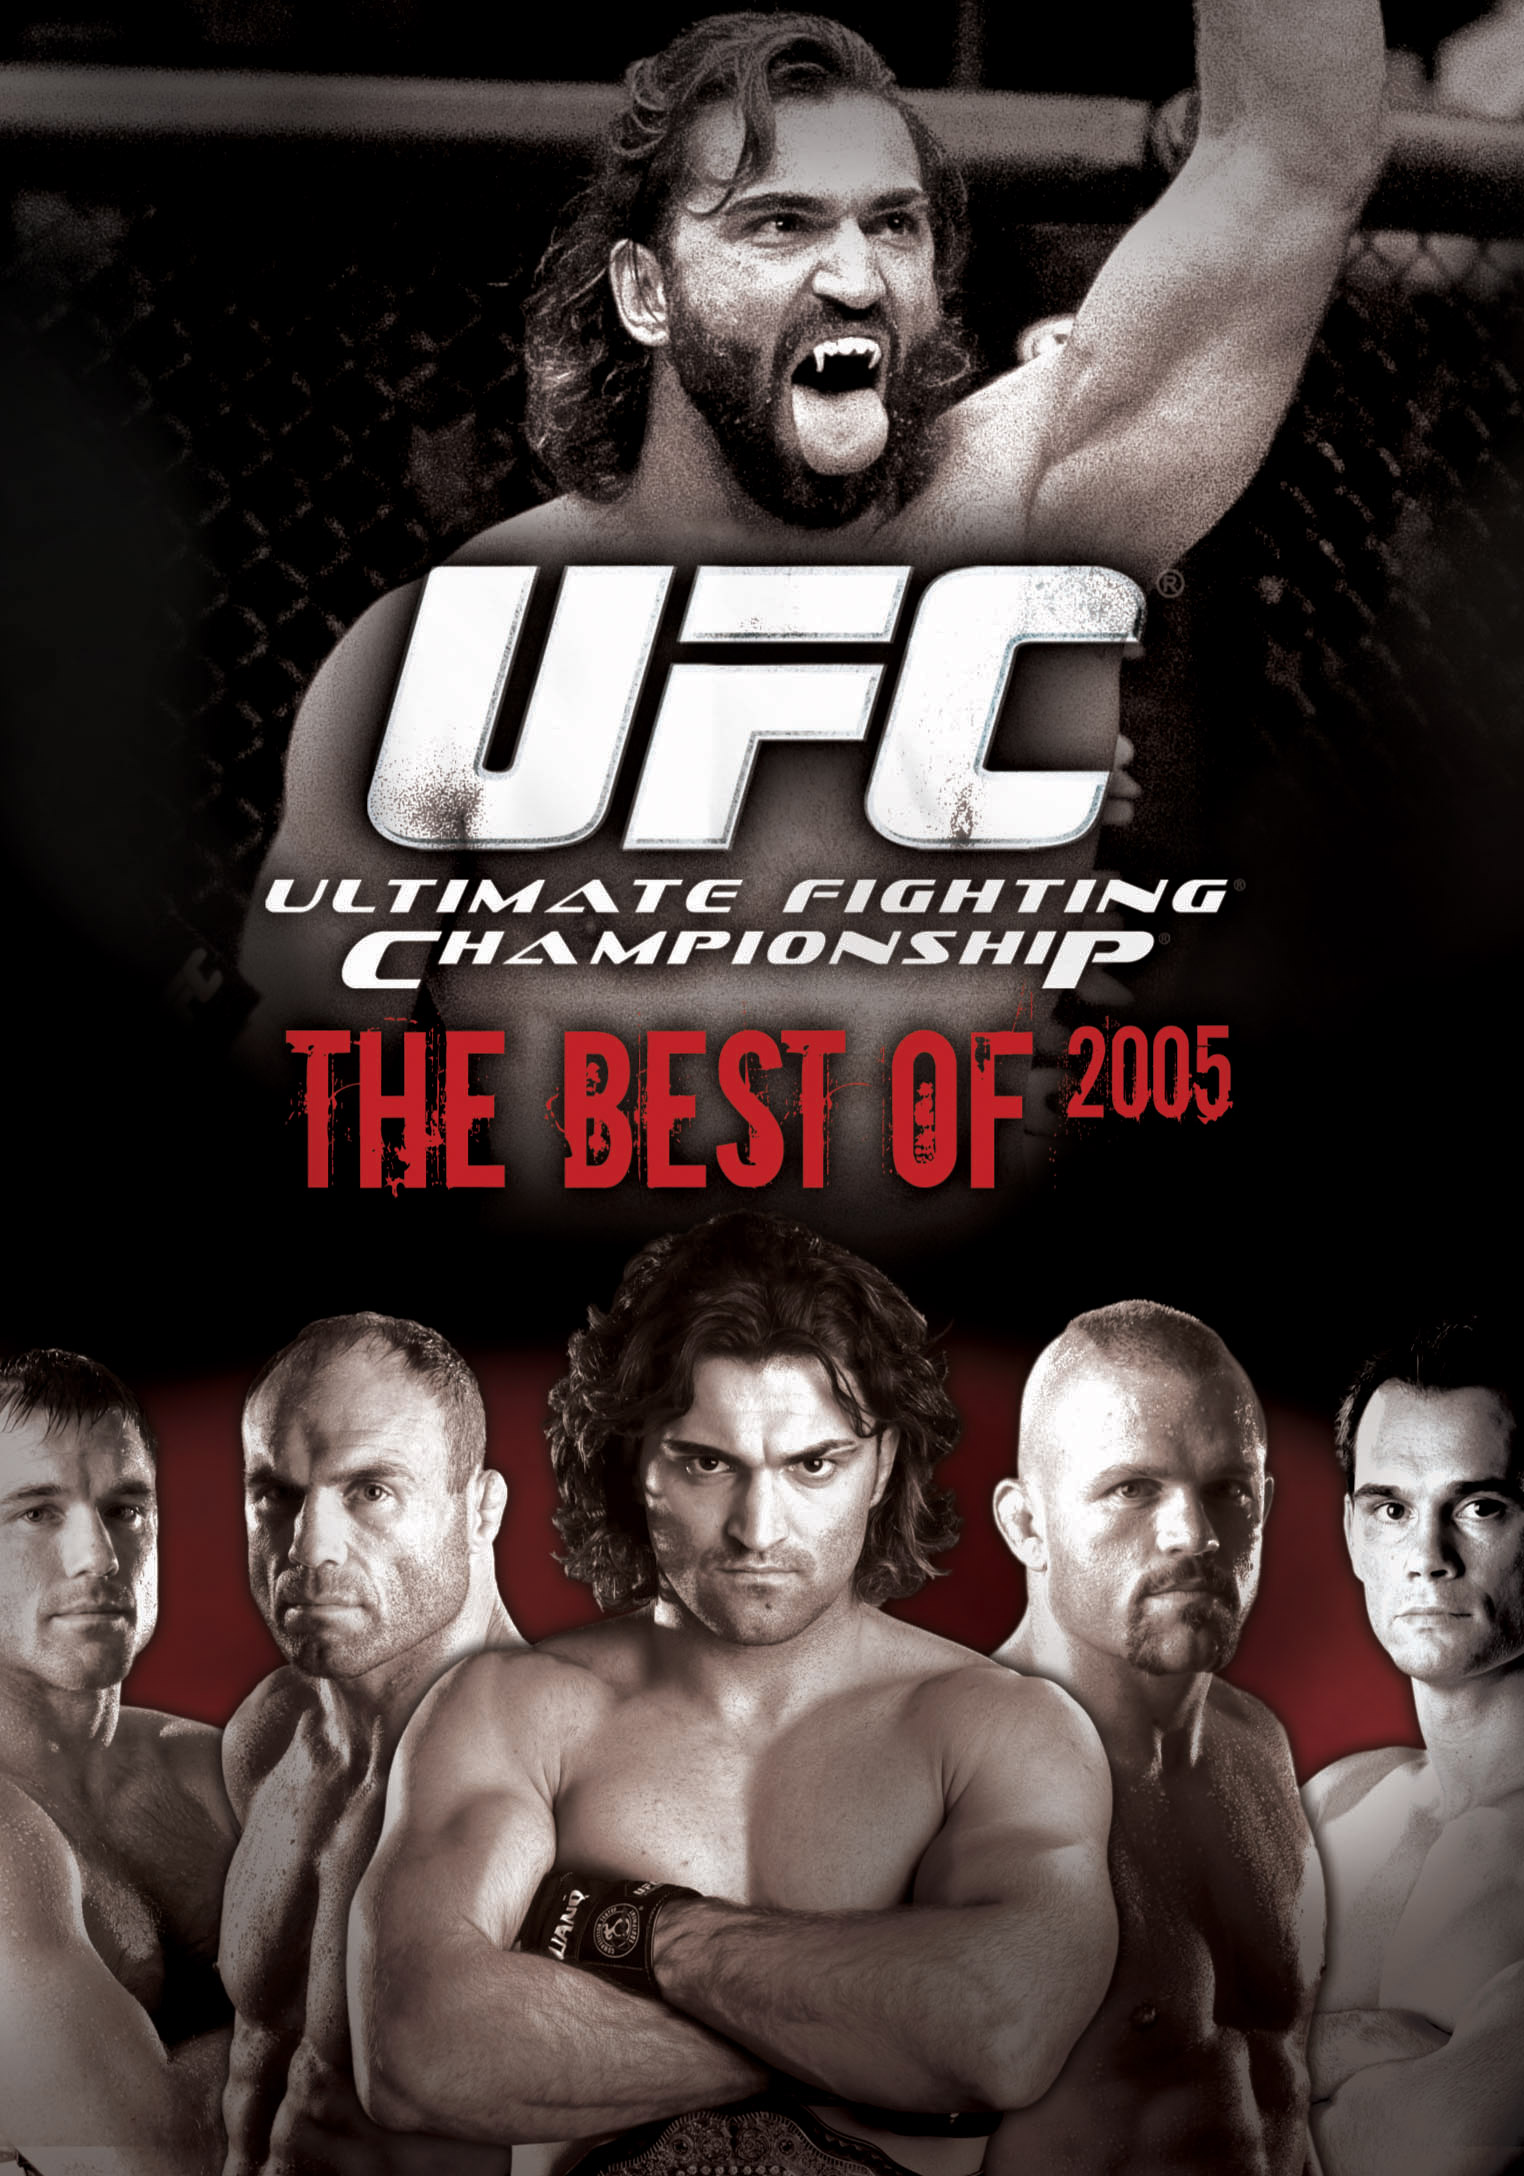 Ultimate Fighting Championship: Best of 2005